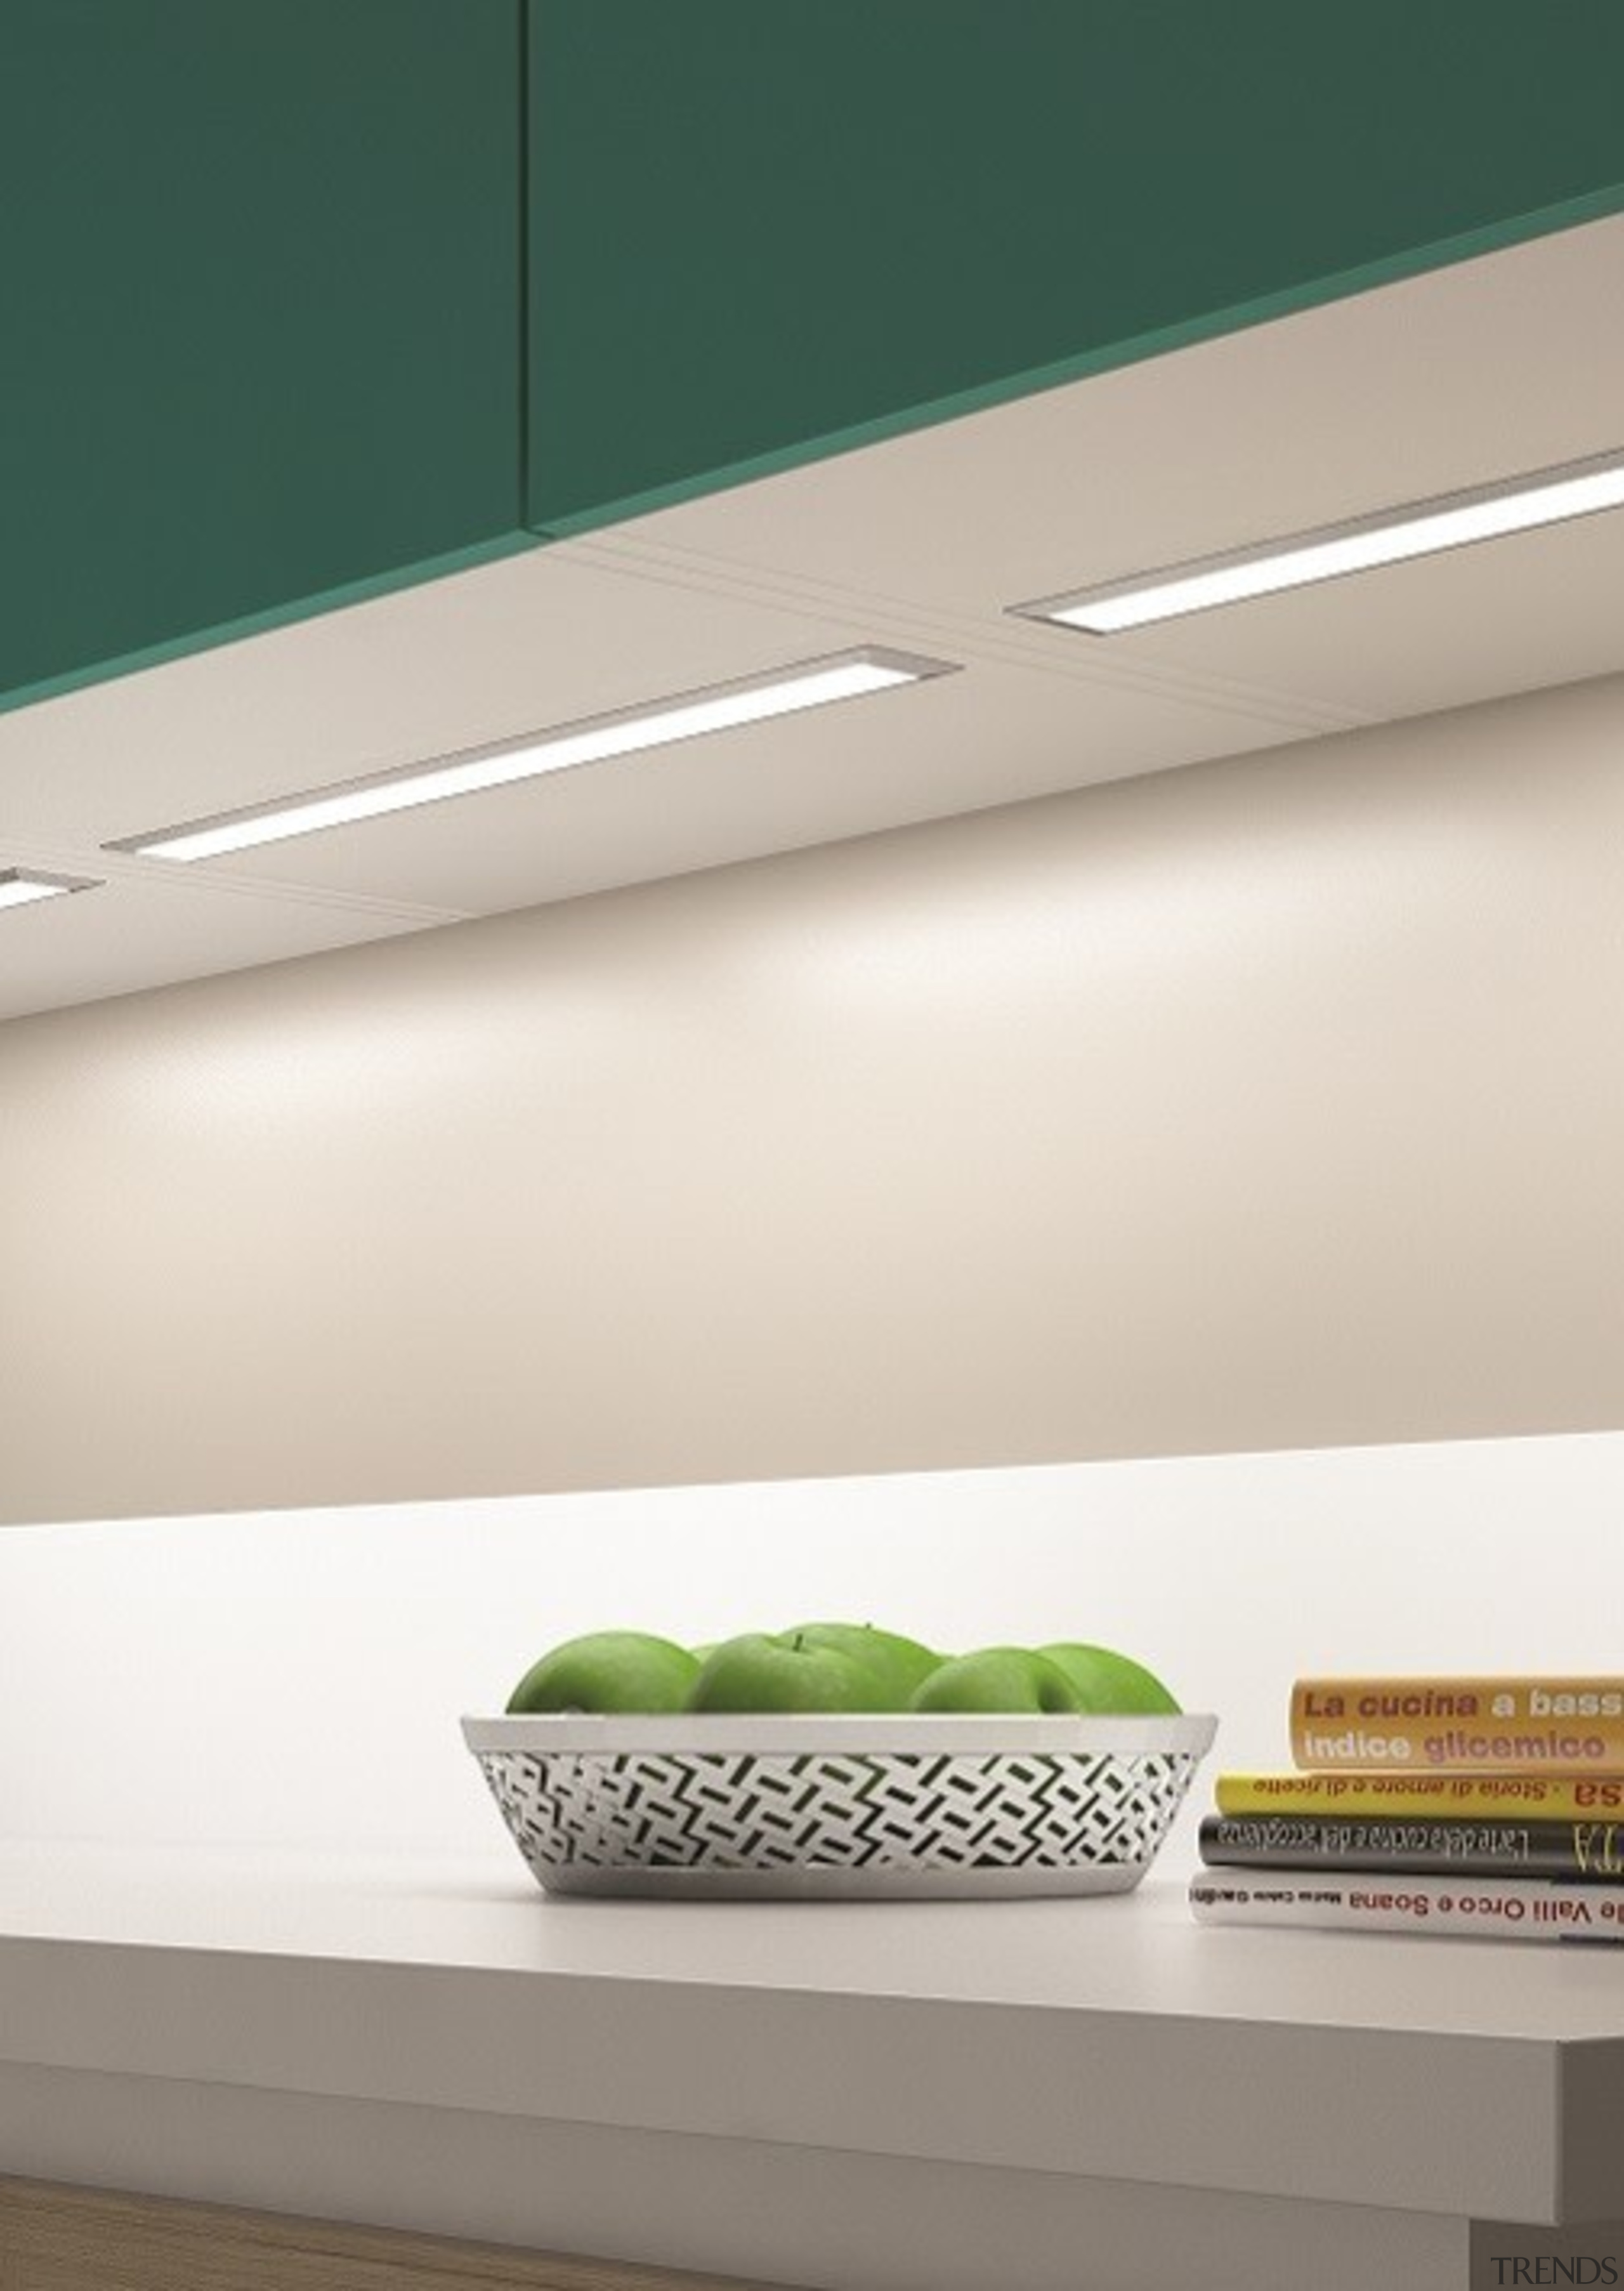 Designed in Italy to comply with Australian/New Zealand ceiling, daylighting, interior design, lighting, product design, white